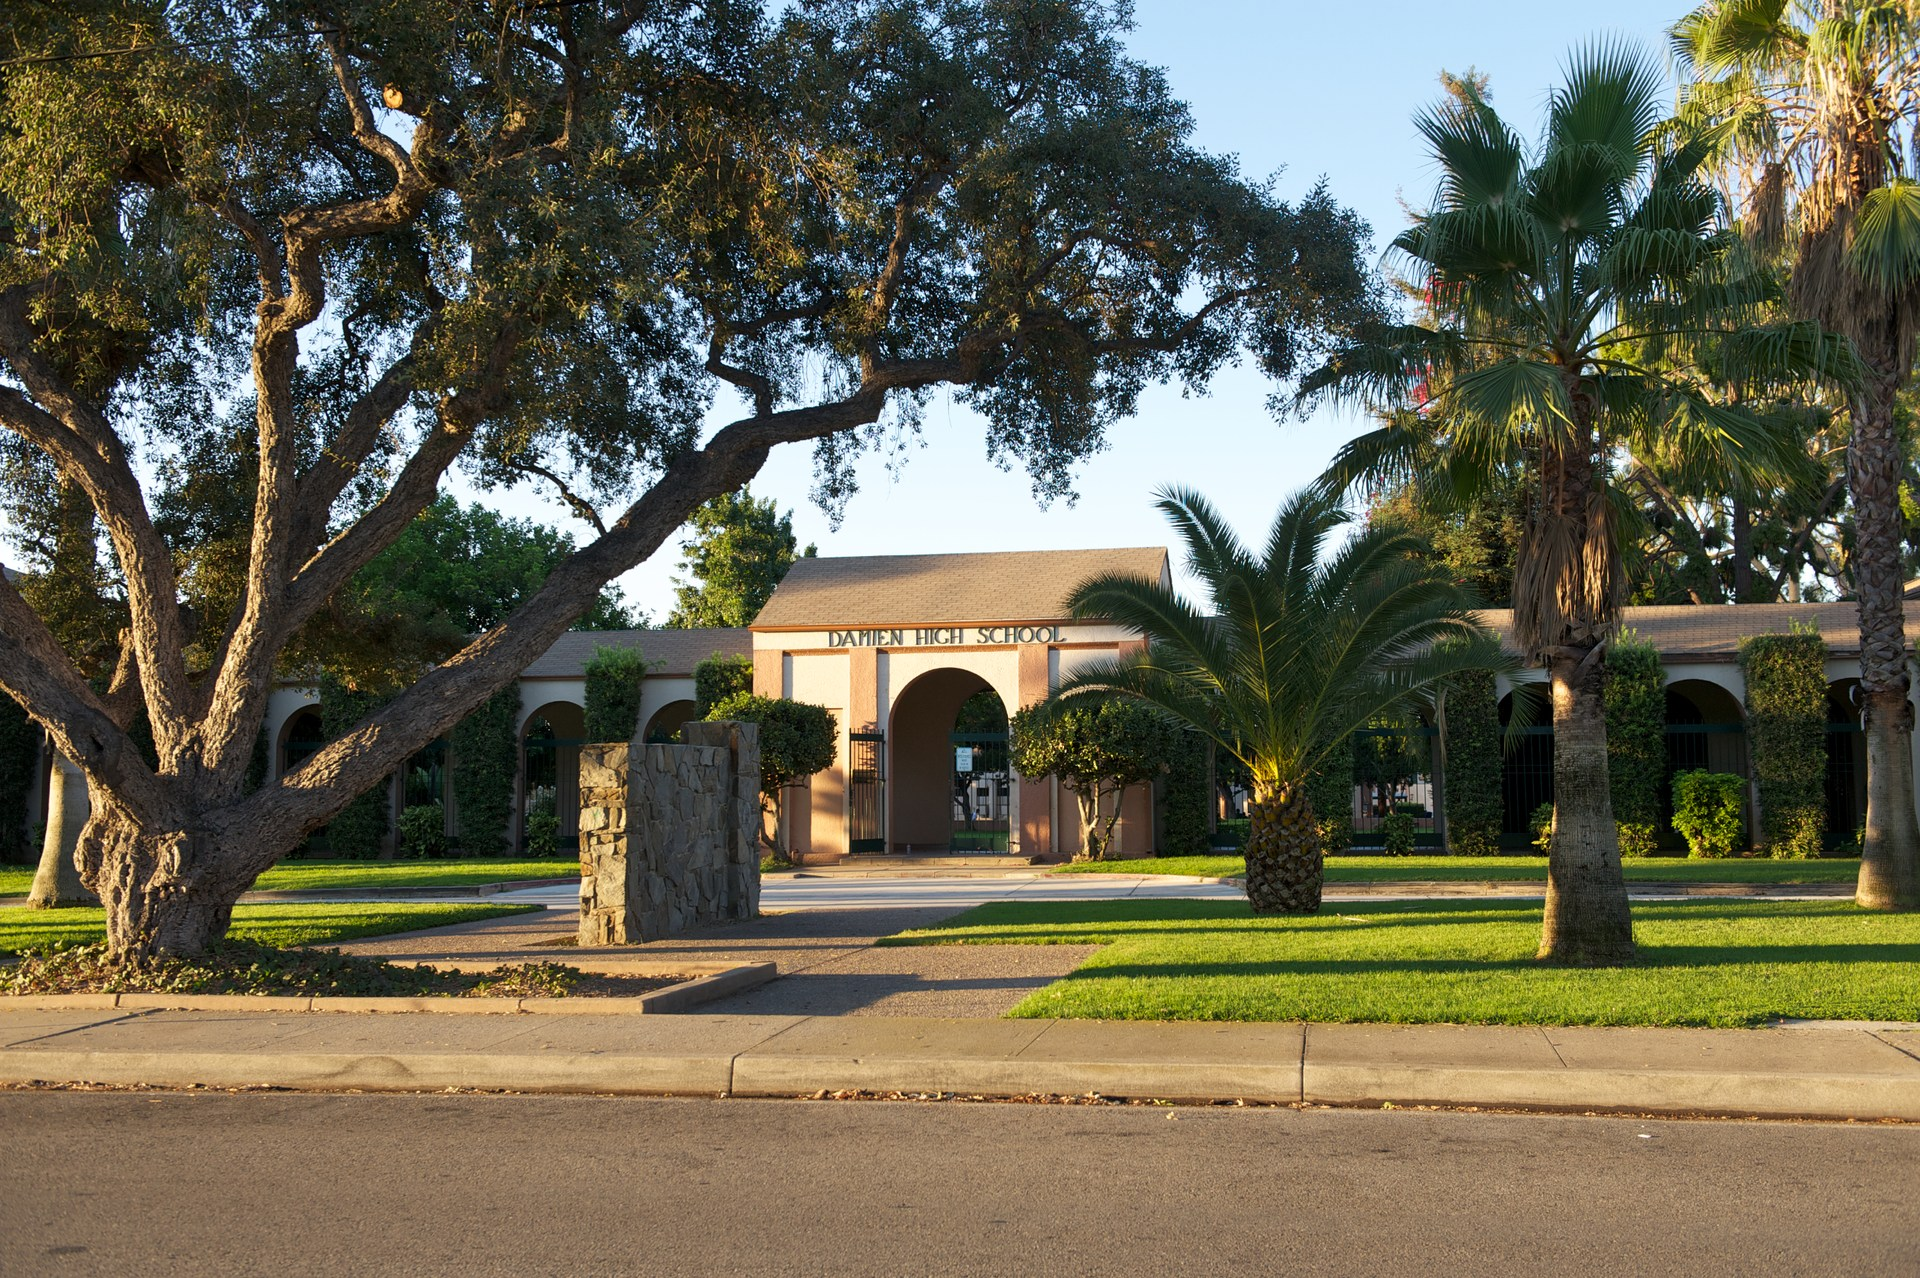 Damien High School Main Entrance